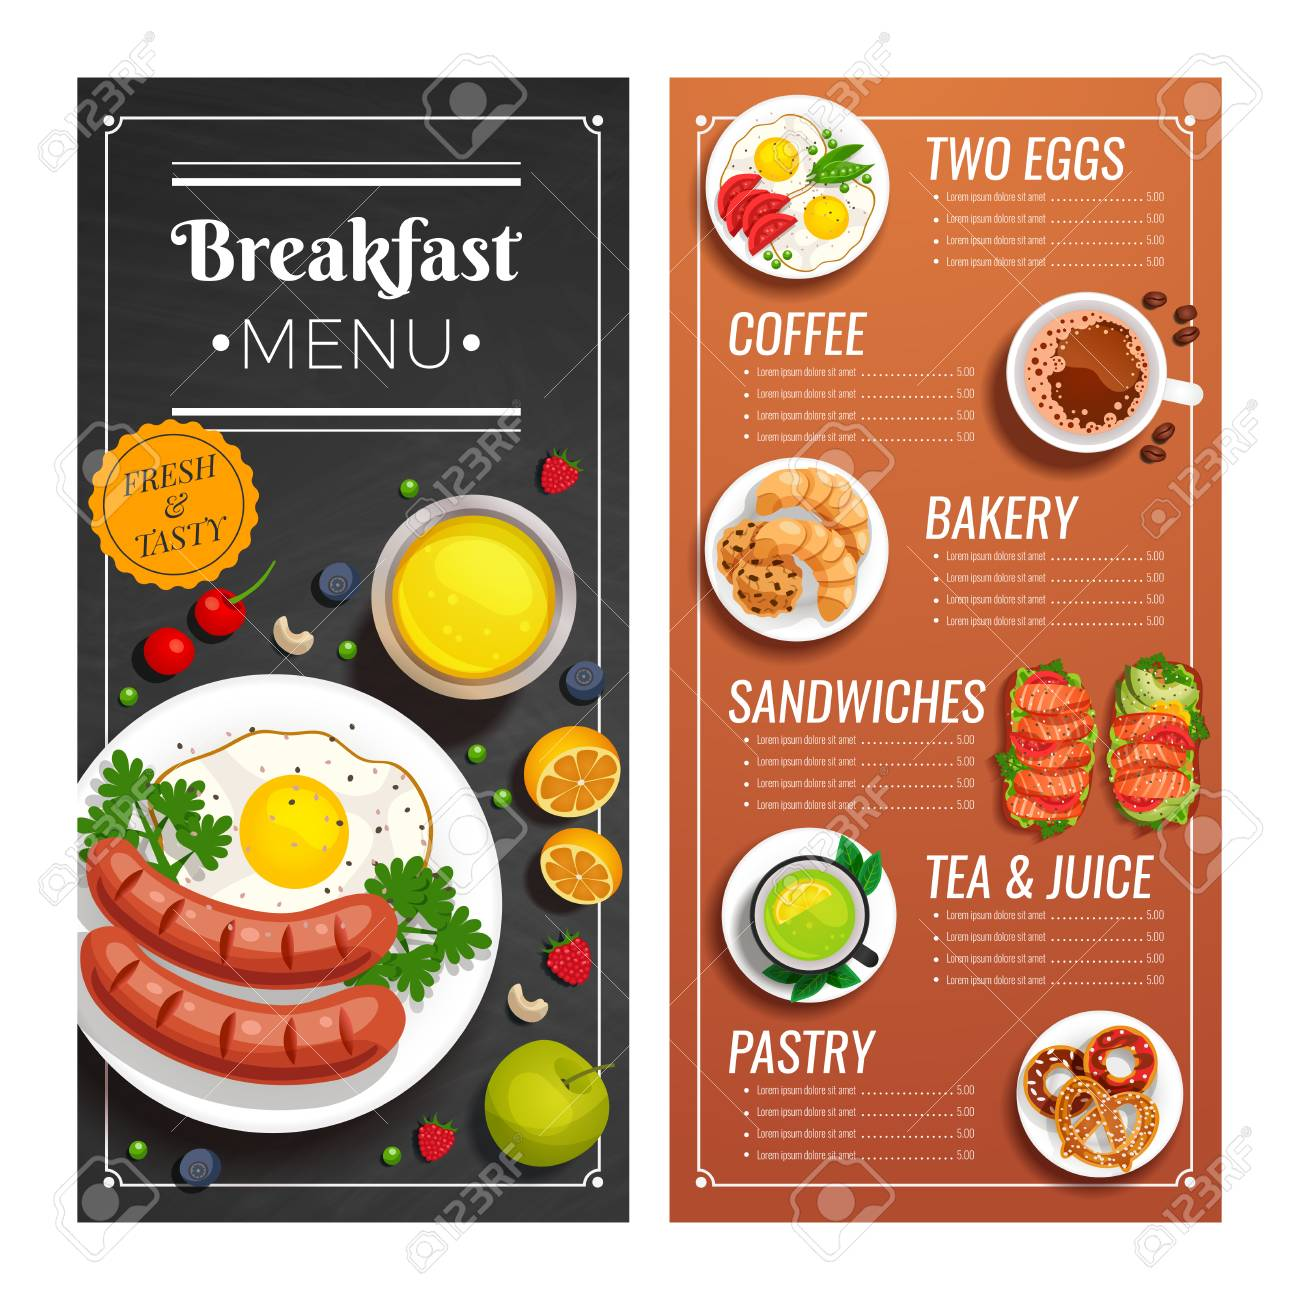 breakfast menu design for cafe and restaurant with offer of dishes